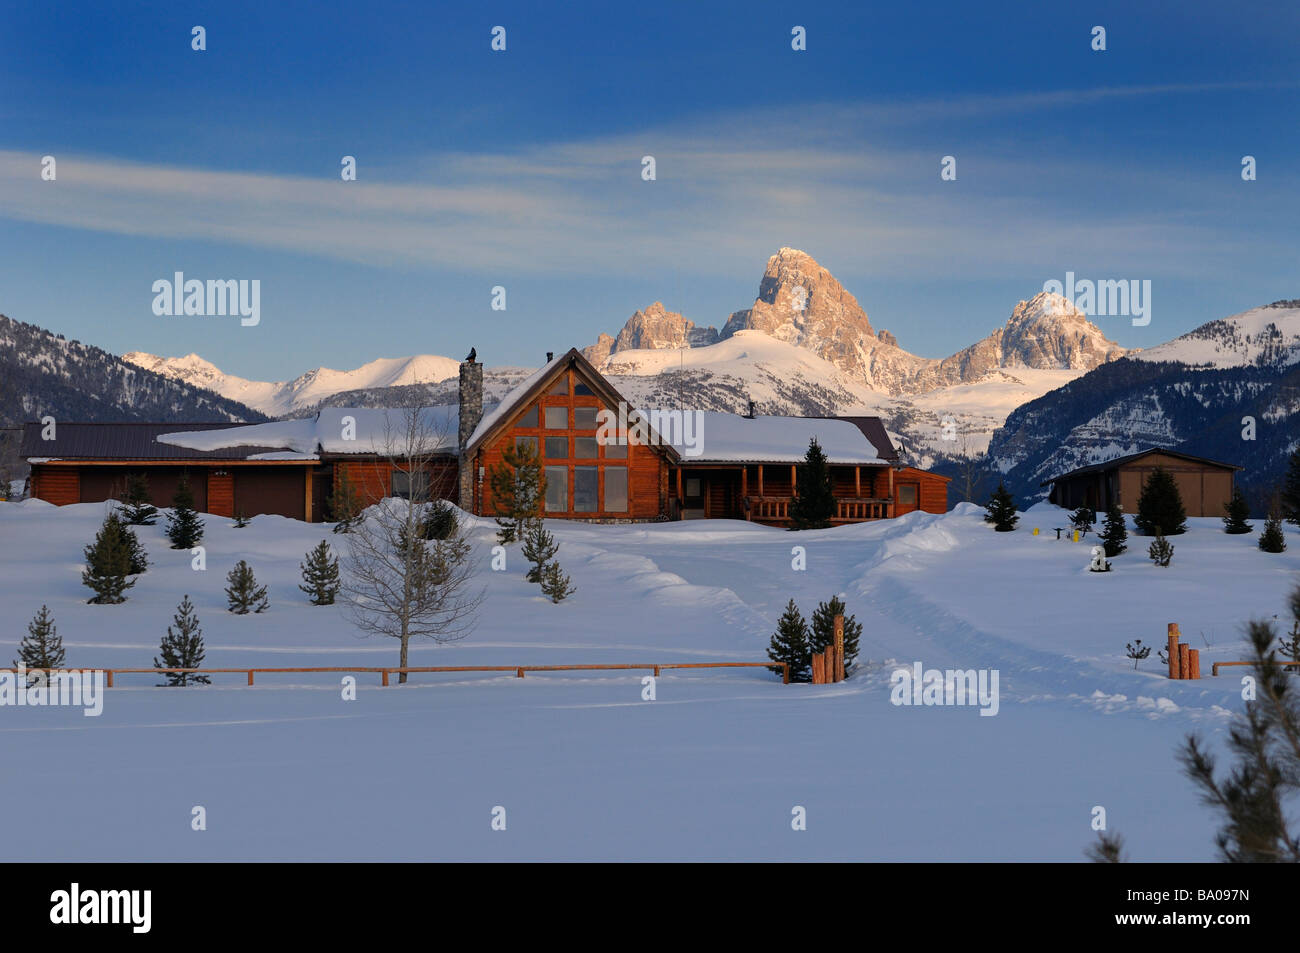 New house in winter evening in Idaho with Grand Teton peaks Wyoming in sunlight at sundown - Stock Image